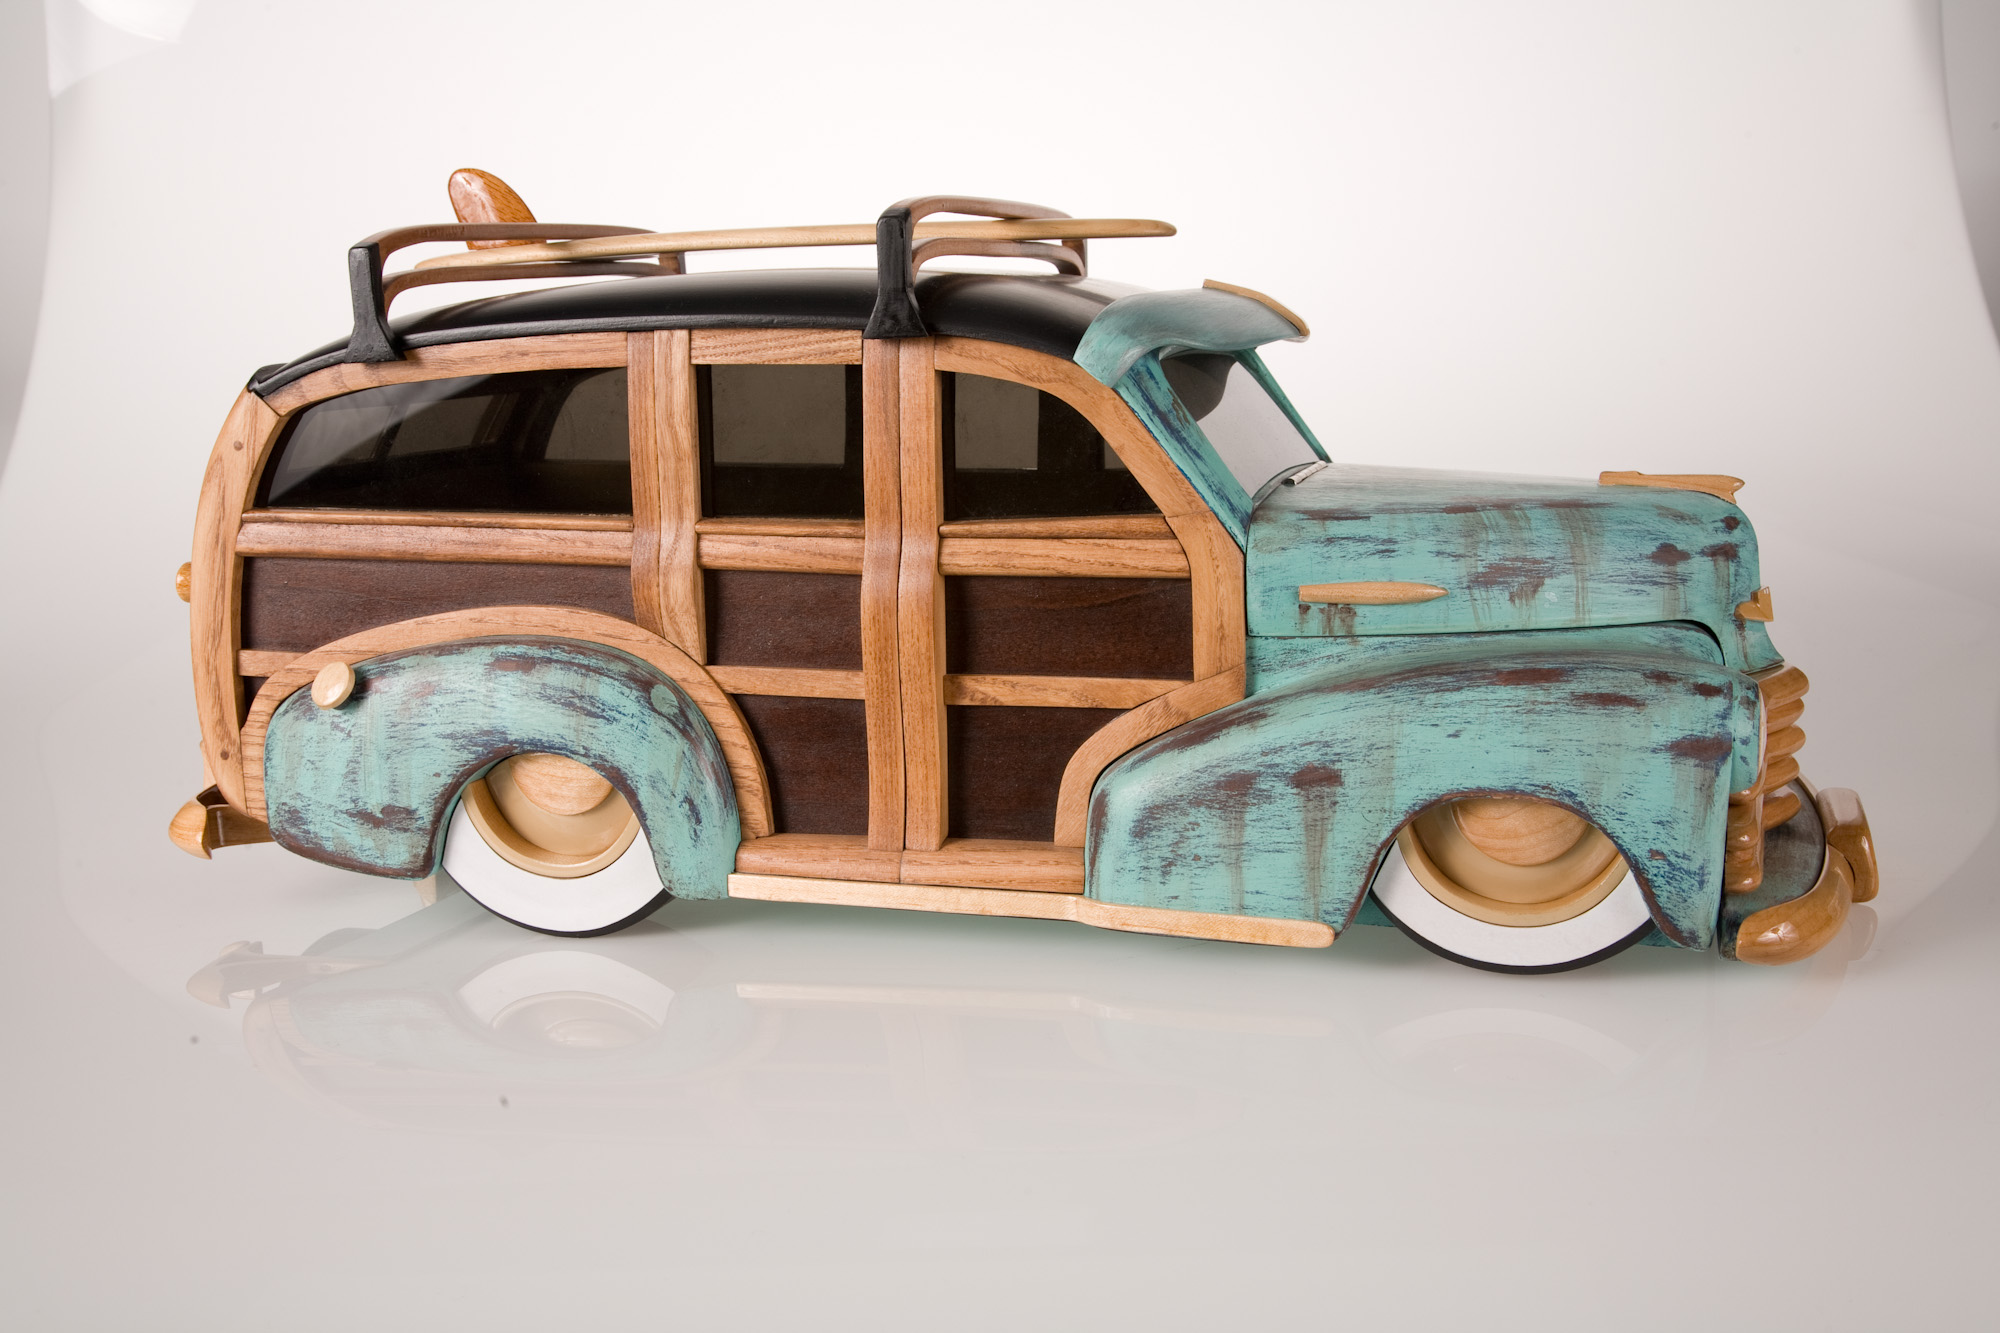 Carguy art that 39 s so nice your wife will let for Tinning table model